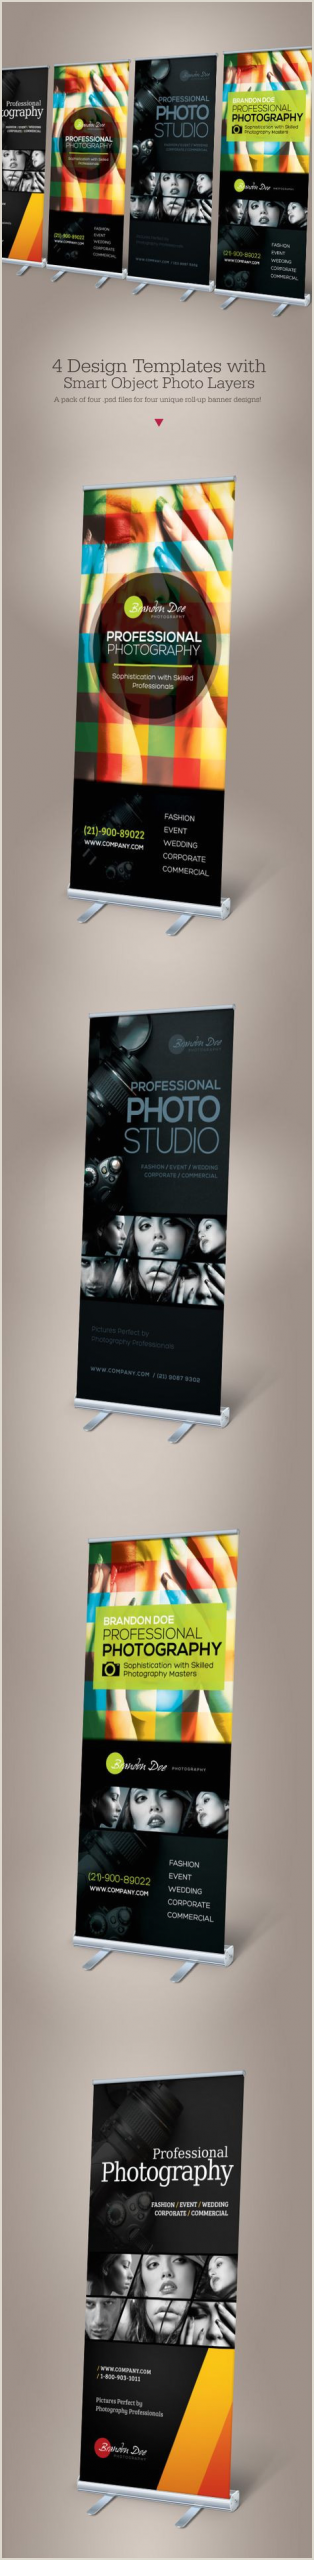 Banner Stand Ideas 9 Best Banner Stand Ideas Images